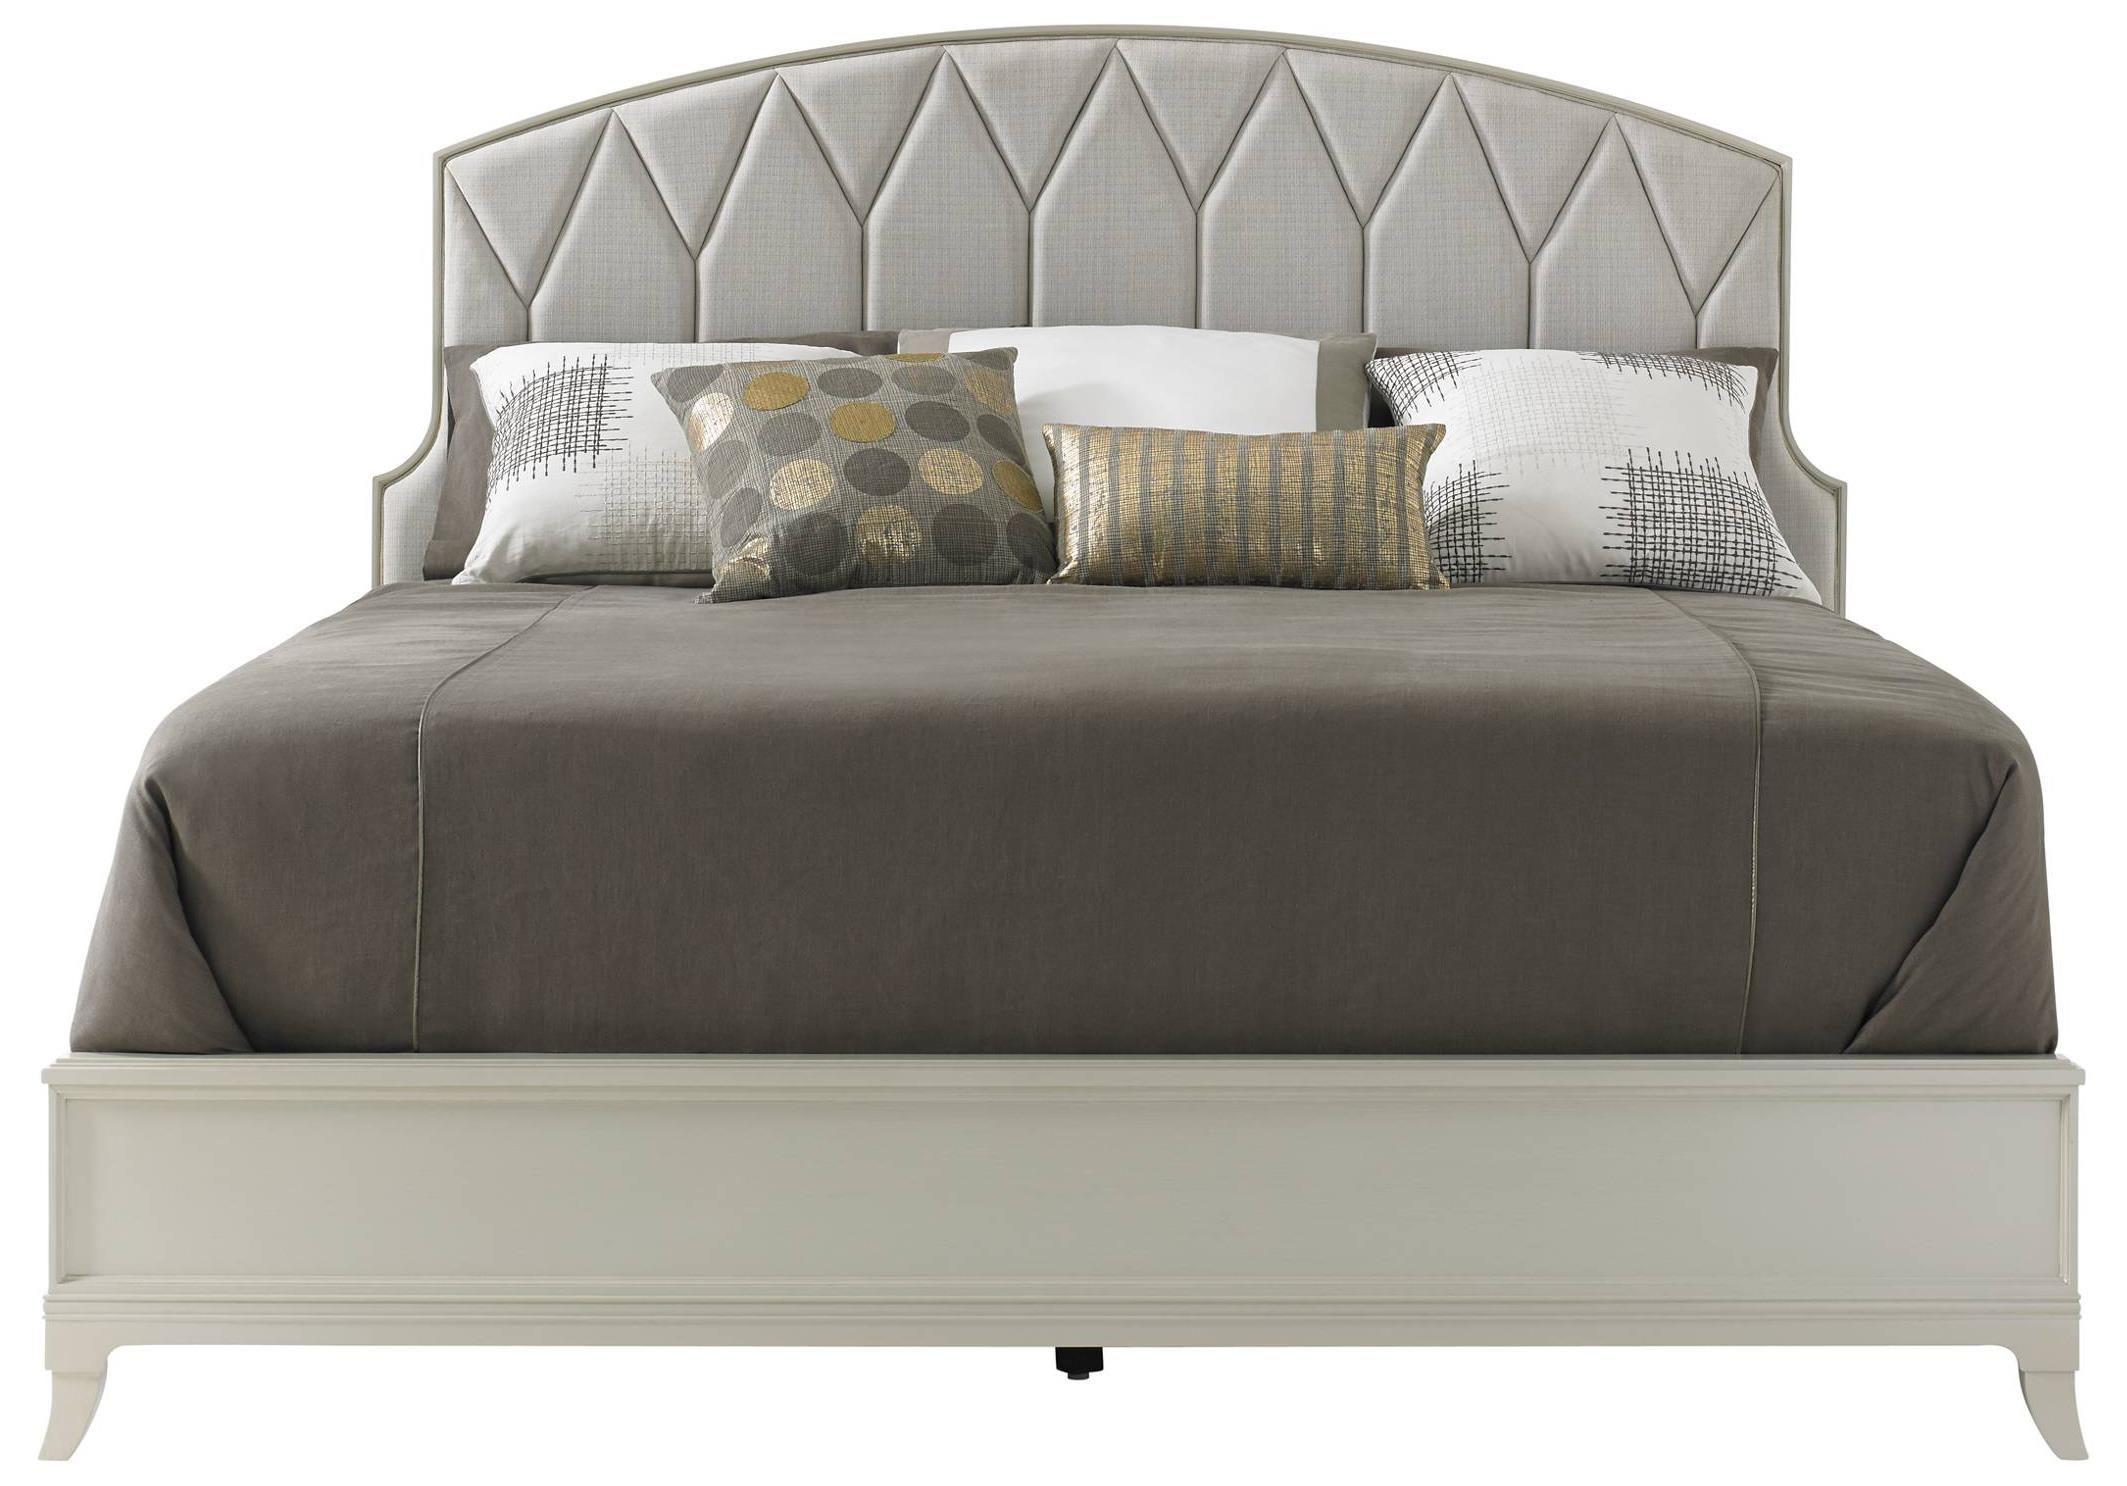 Stanley Furniture Crestaire Queen Ladera Bed - Item Number: 436-23-42